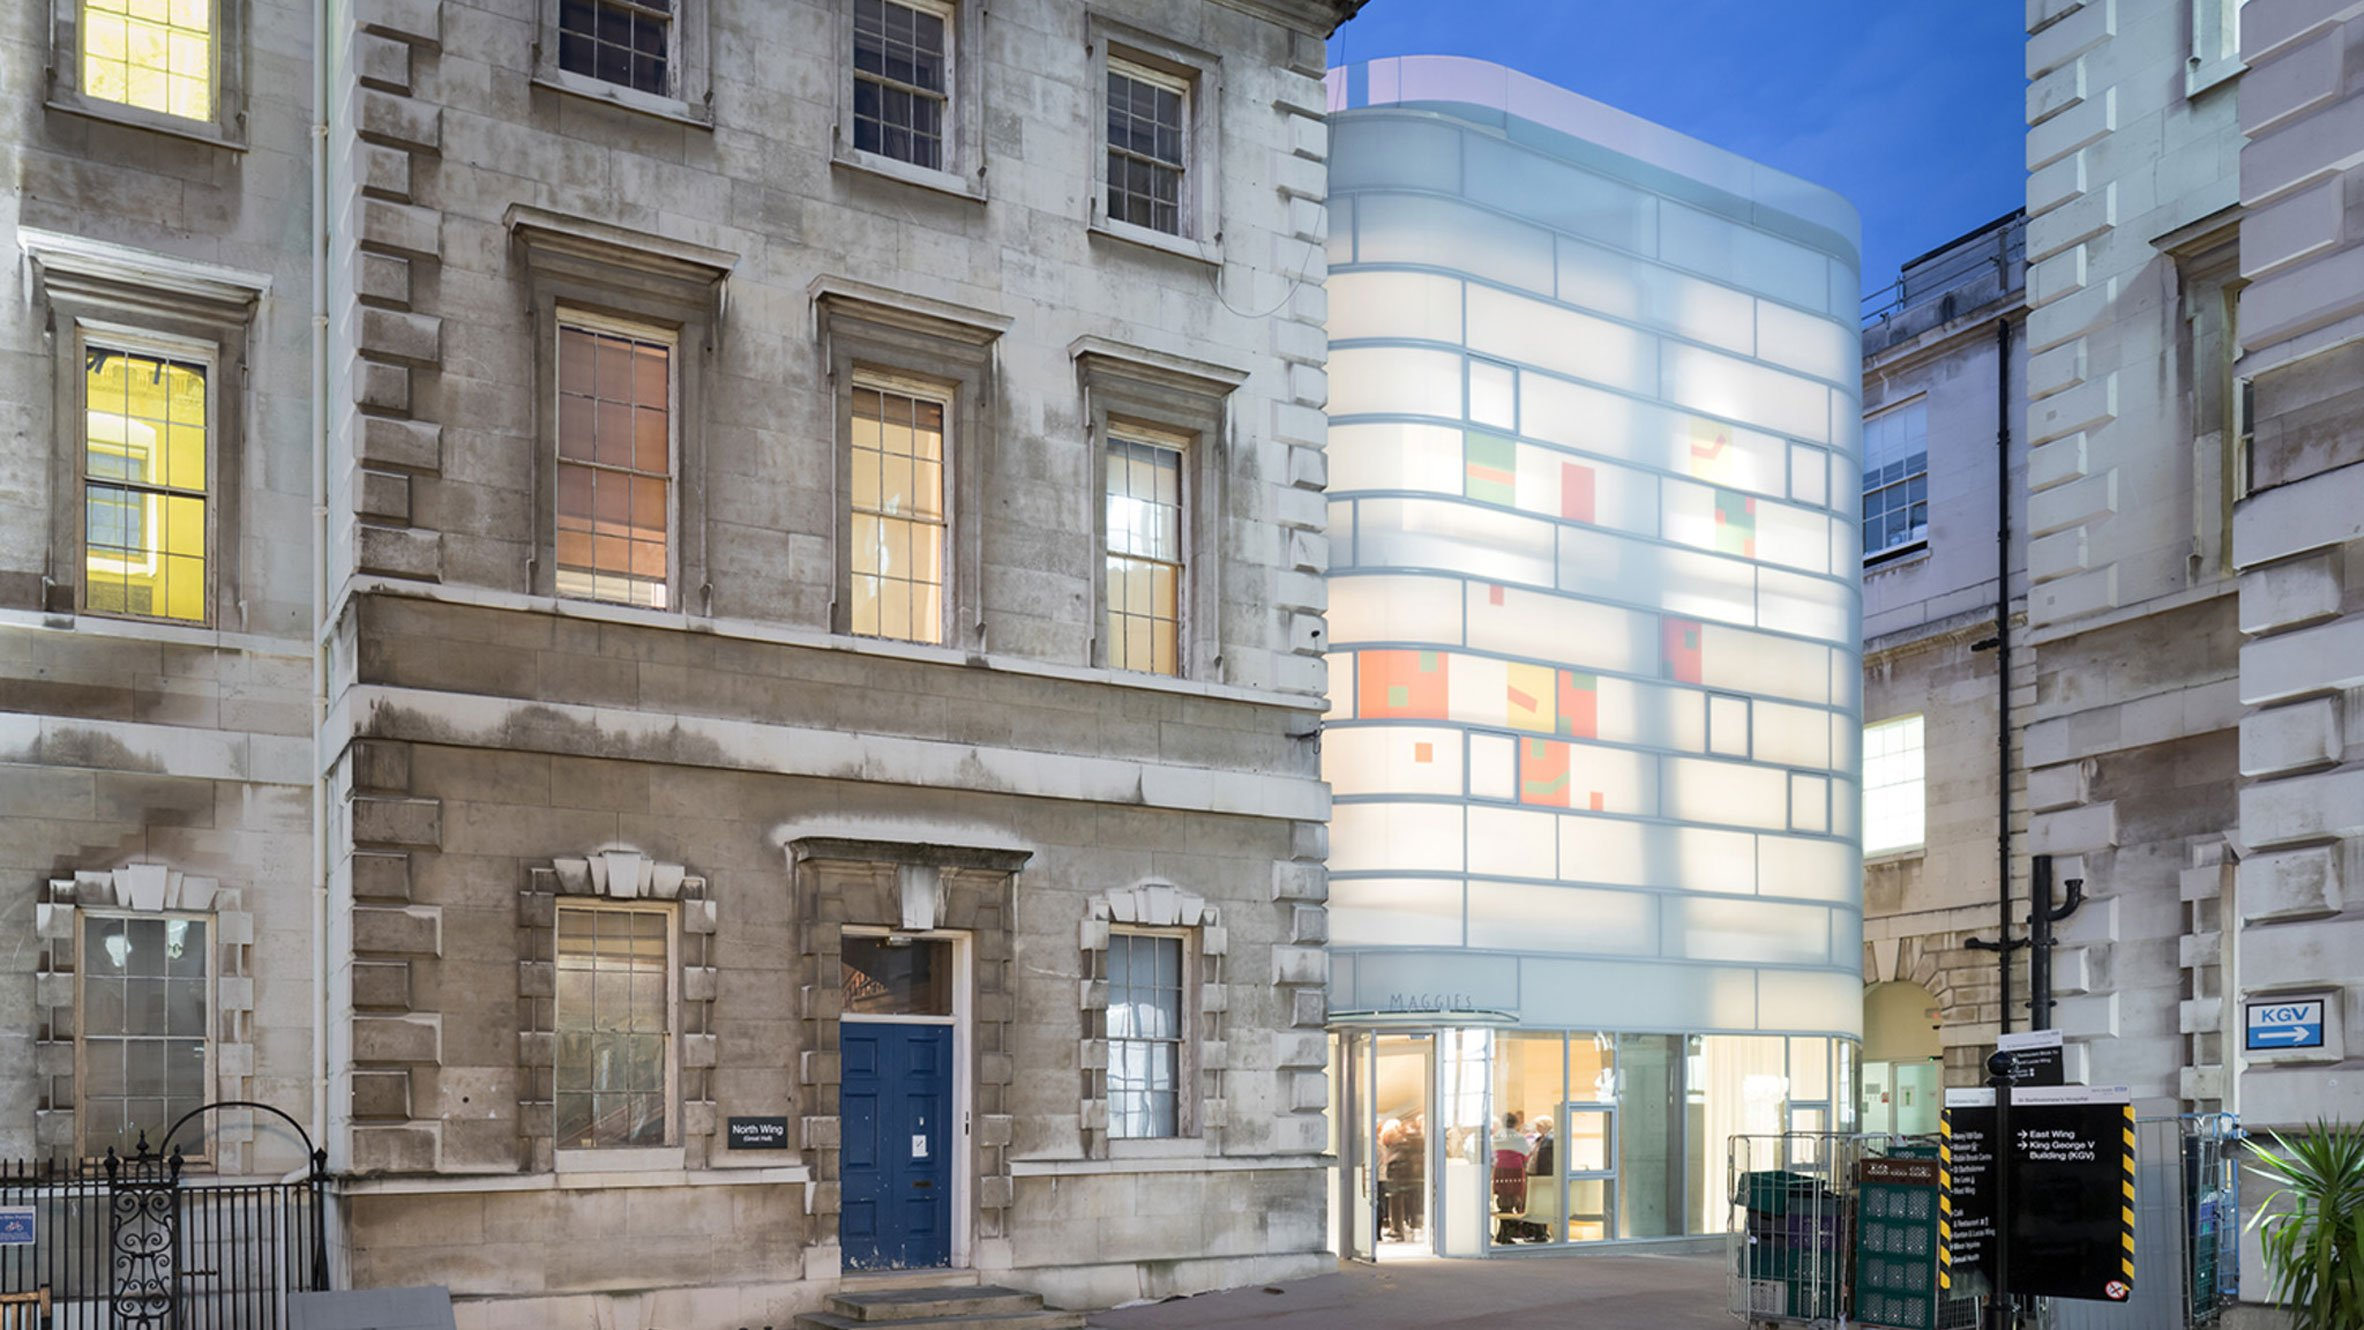 Maggie's Centre Barts, London, UK, by Steven Holl Architects